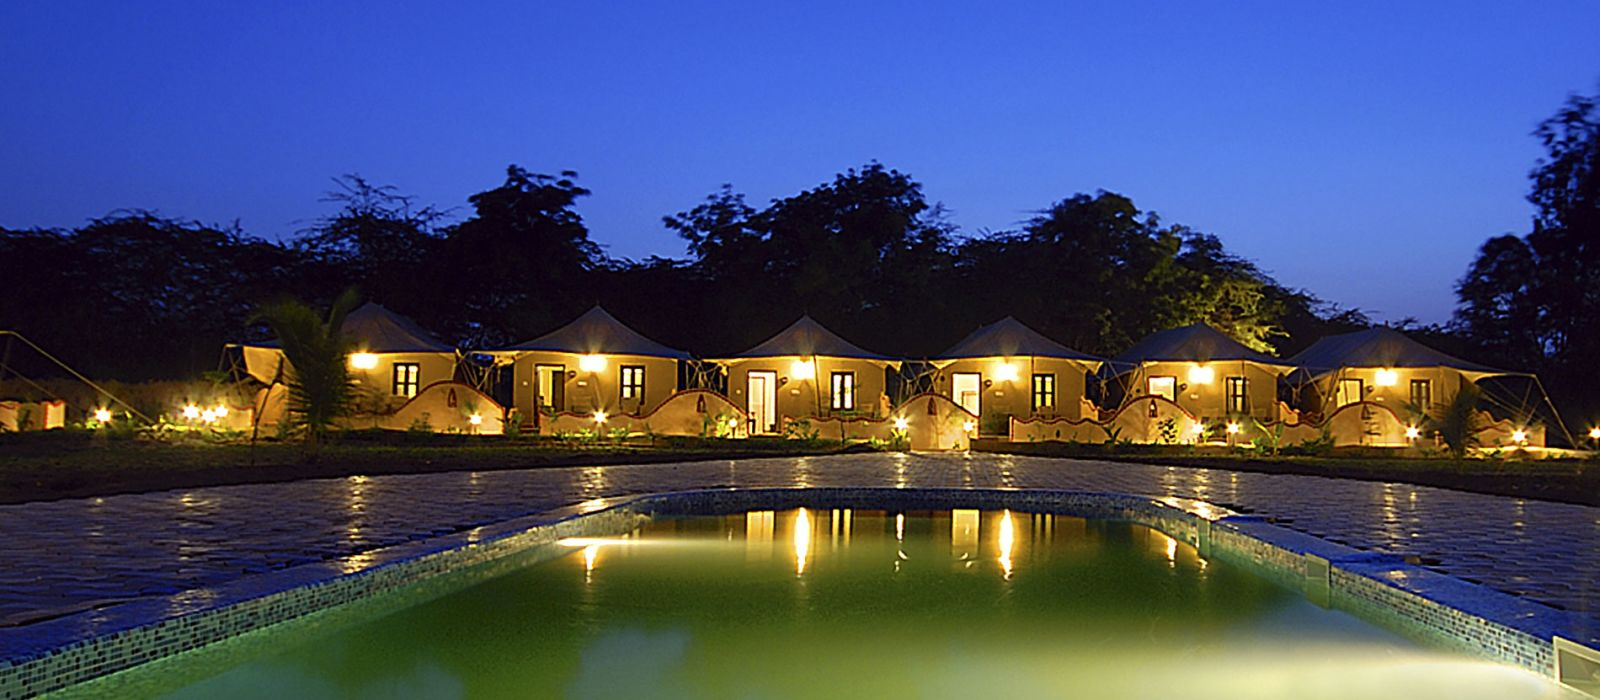 Hotel Infinity Resorts Rann Of Kutch Central & West India